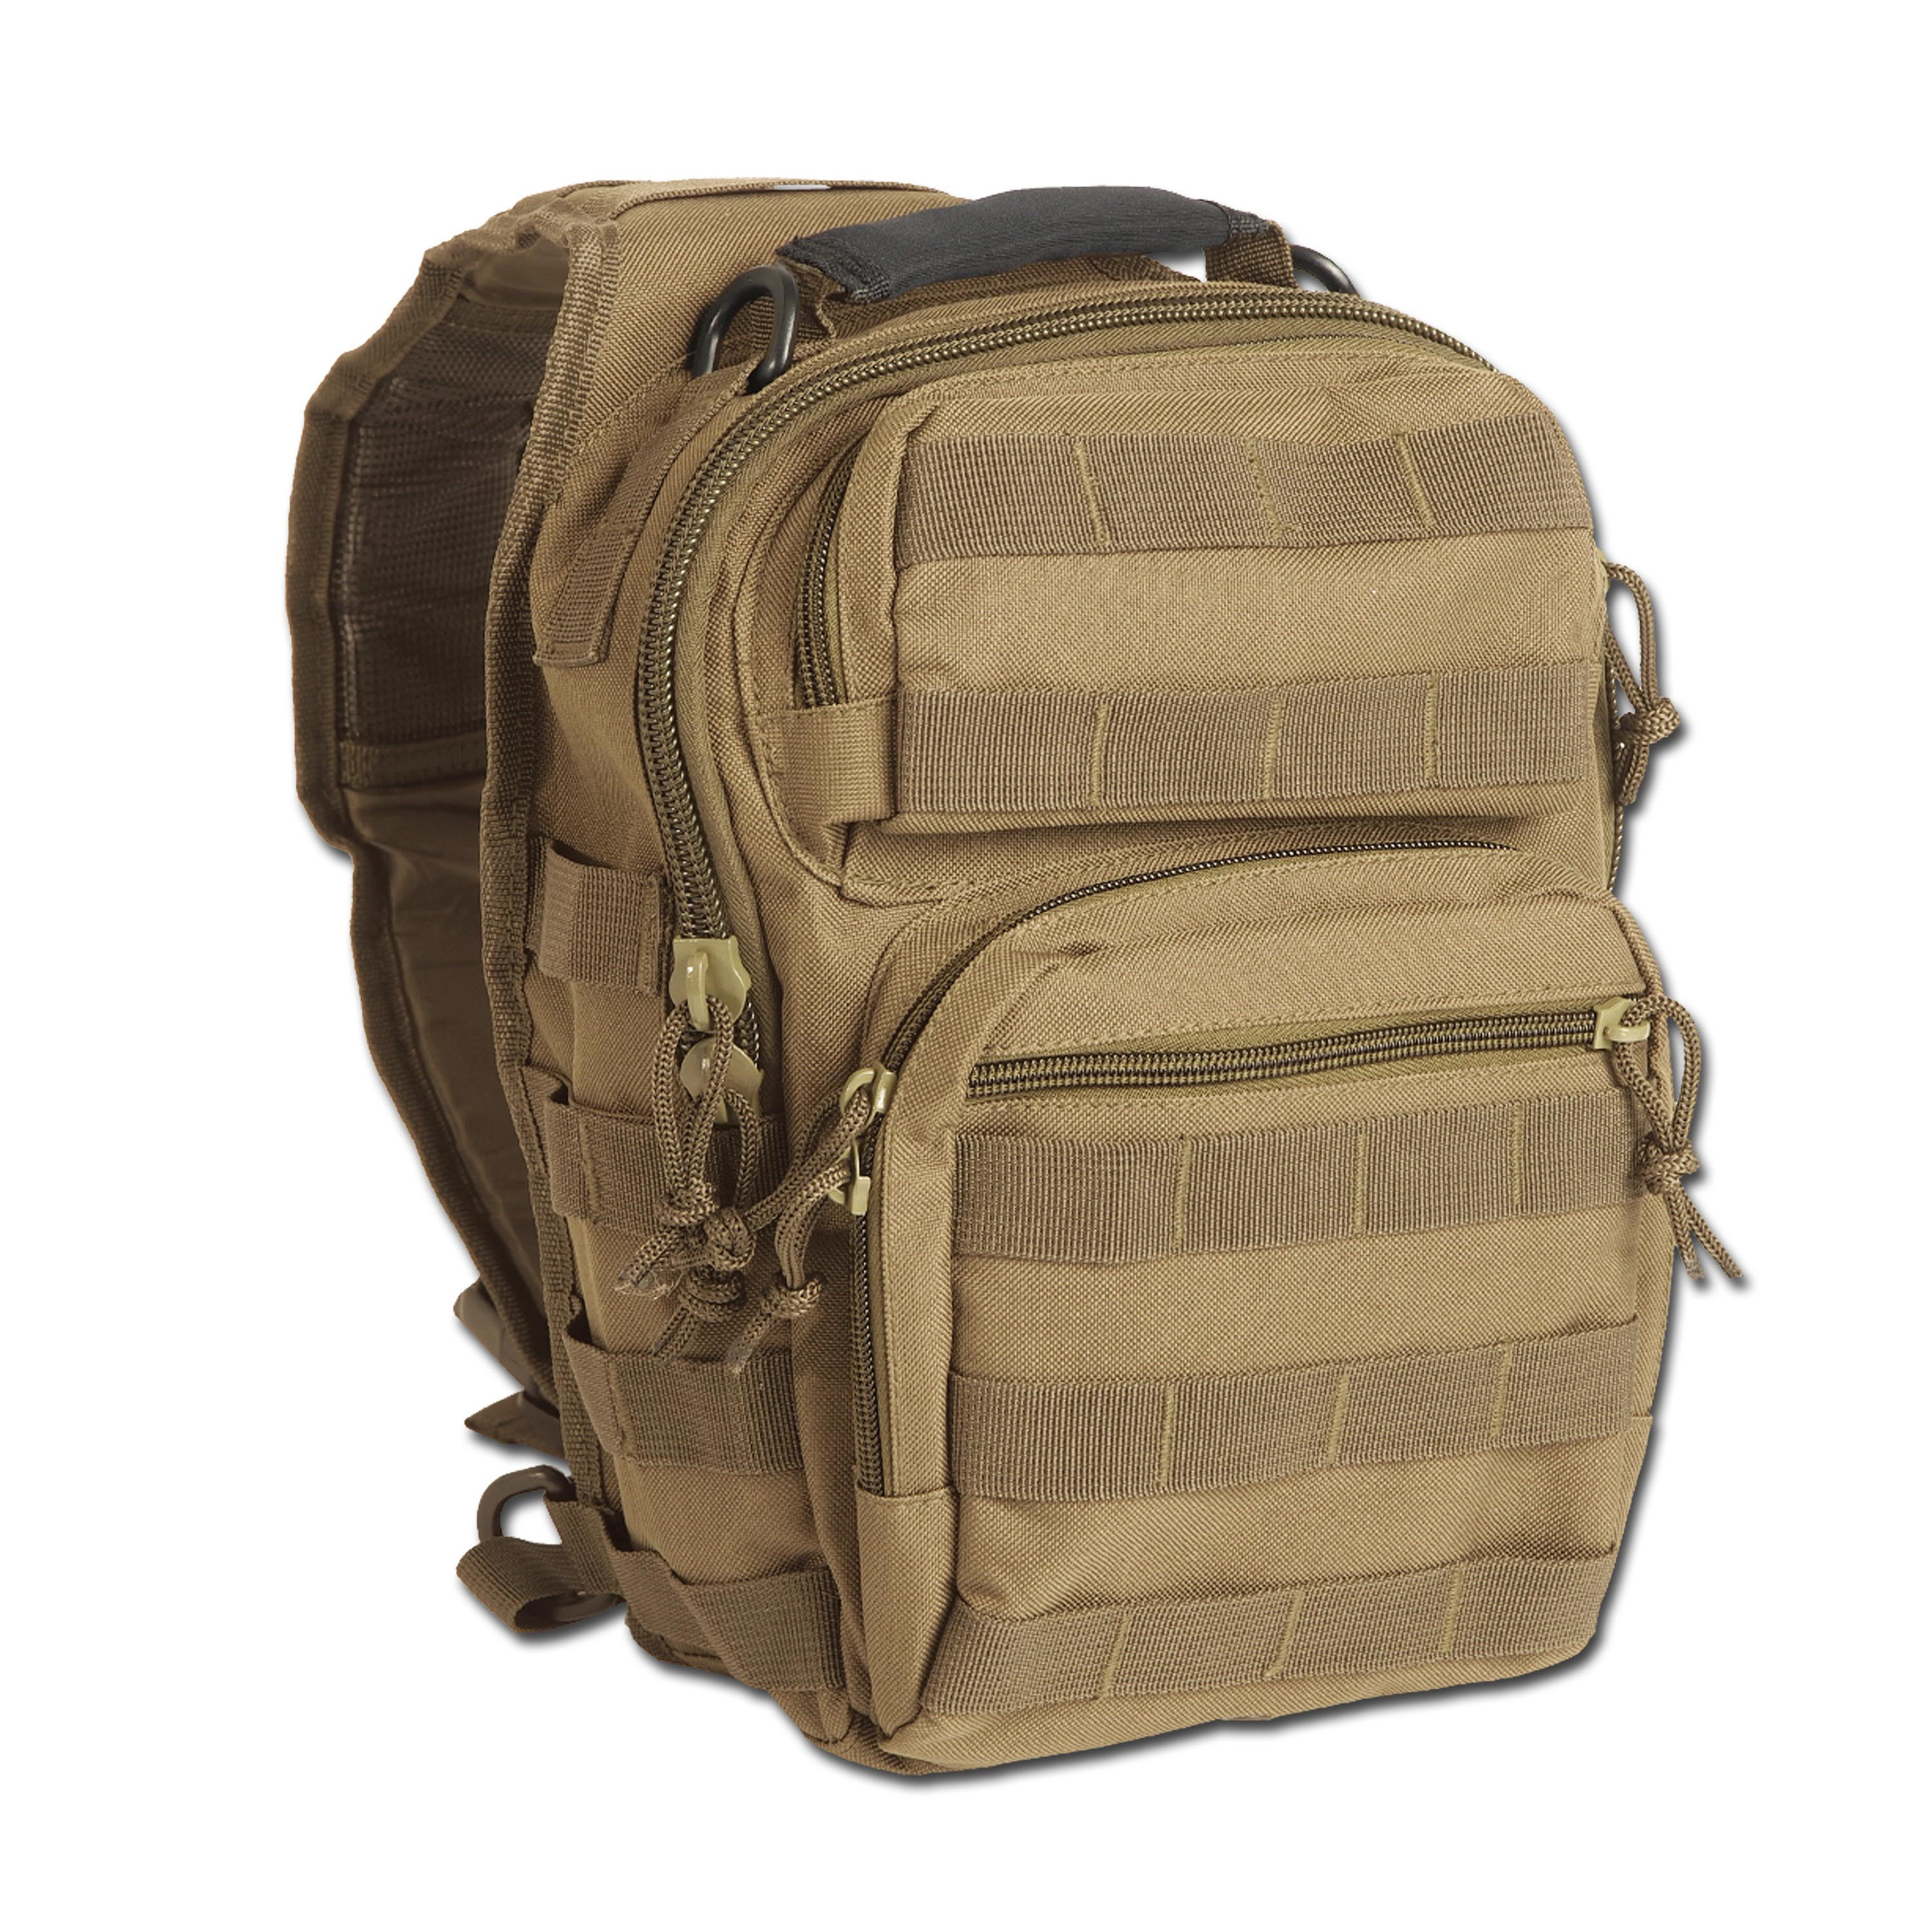 Rucksack Assault Pack One Strap Small coyote